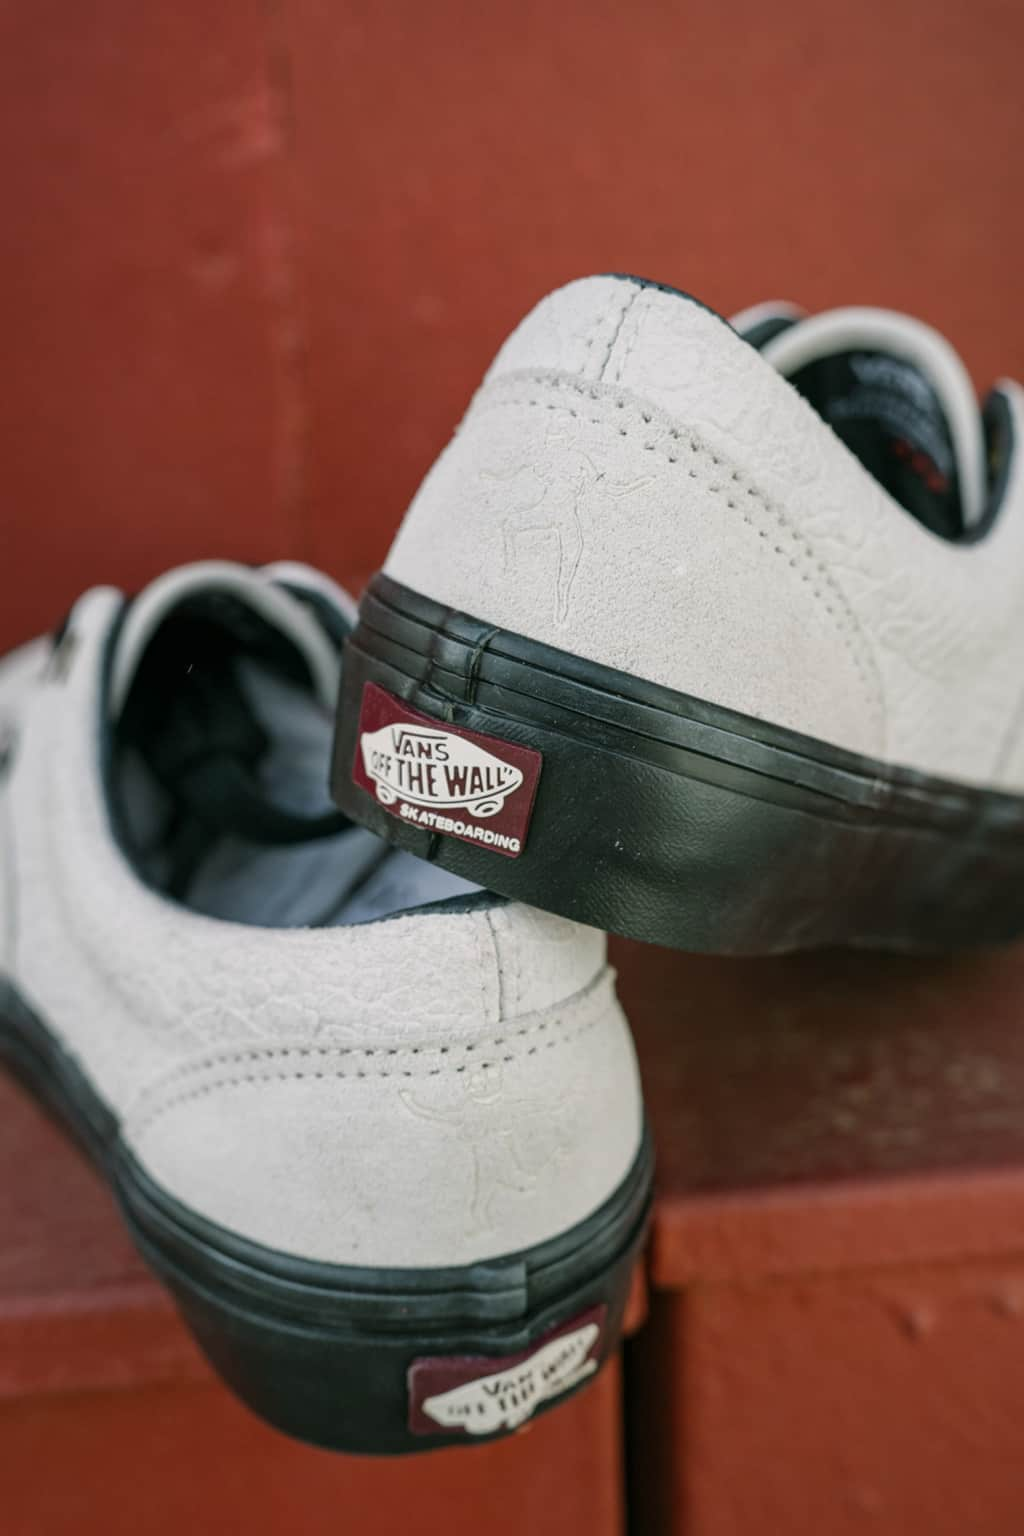 Presenting the Vans Breana Geering Collection